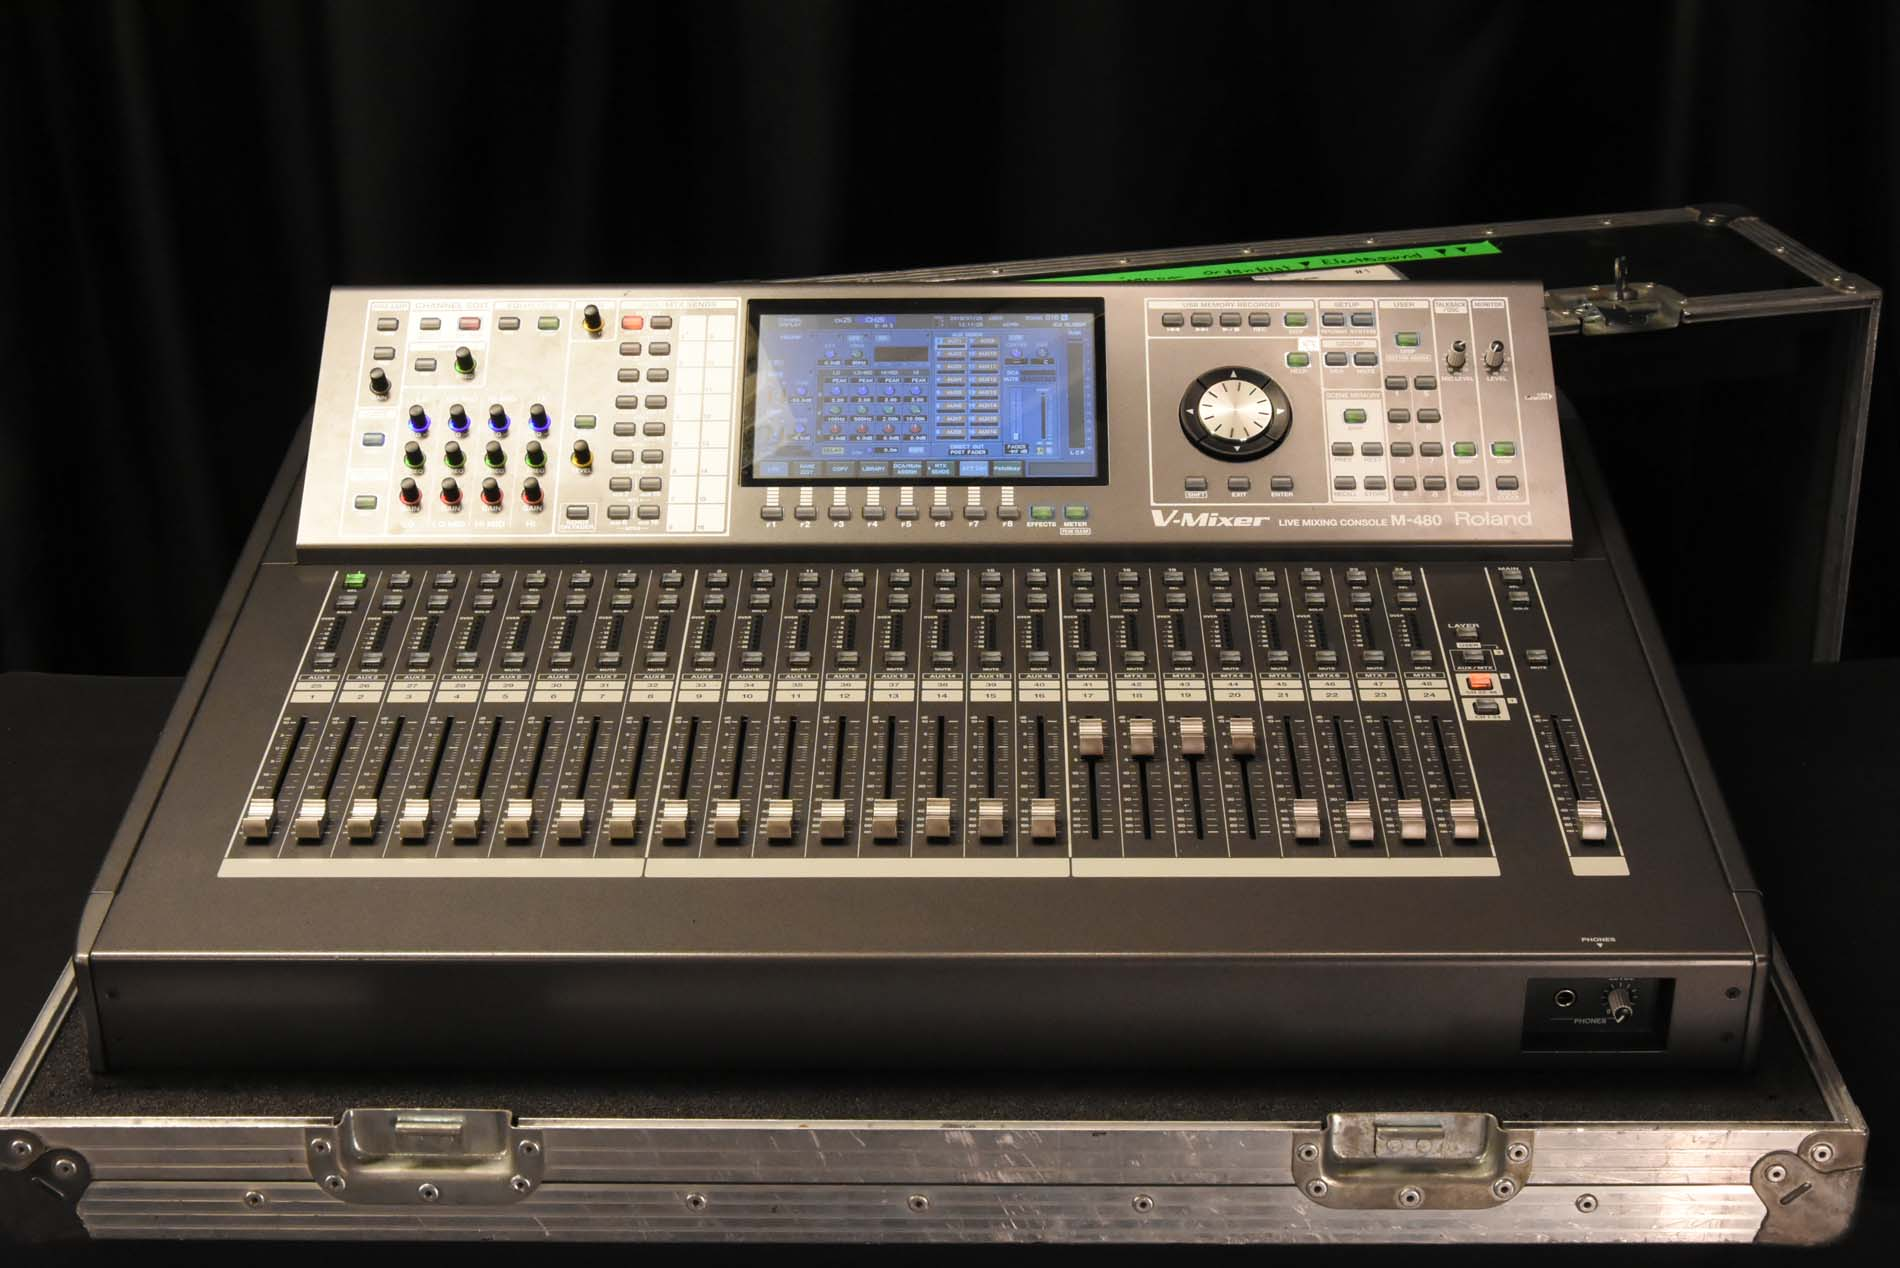 roland m 480 digital mixing console gearwise used av stage equipment. Black Bedroom Furniture Sets. Home Design Ideas